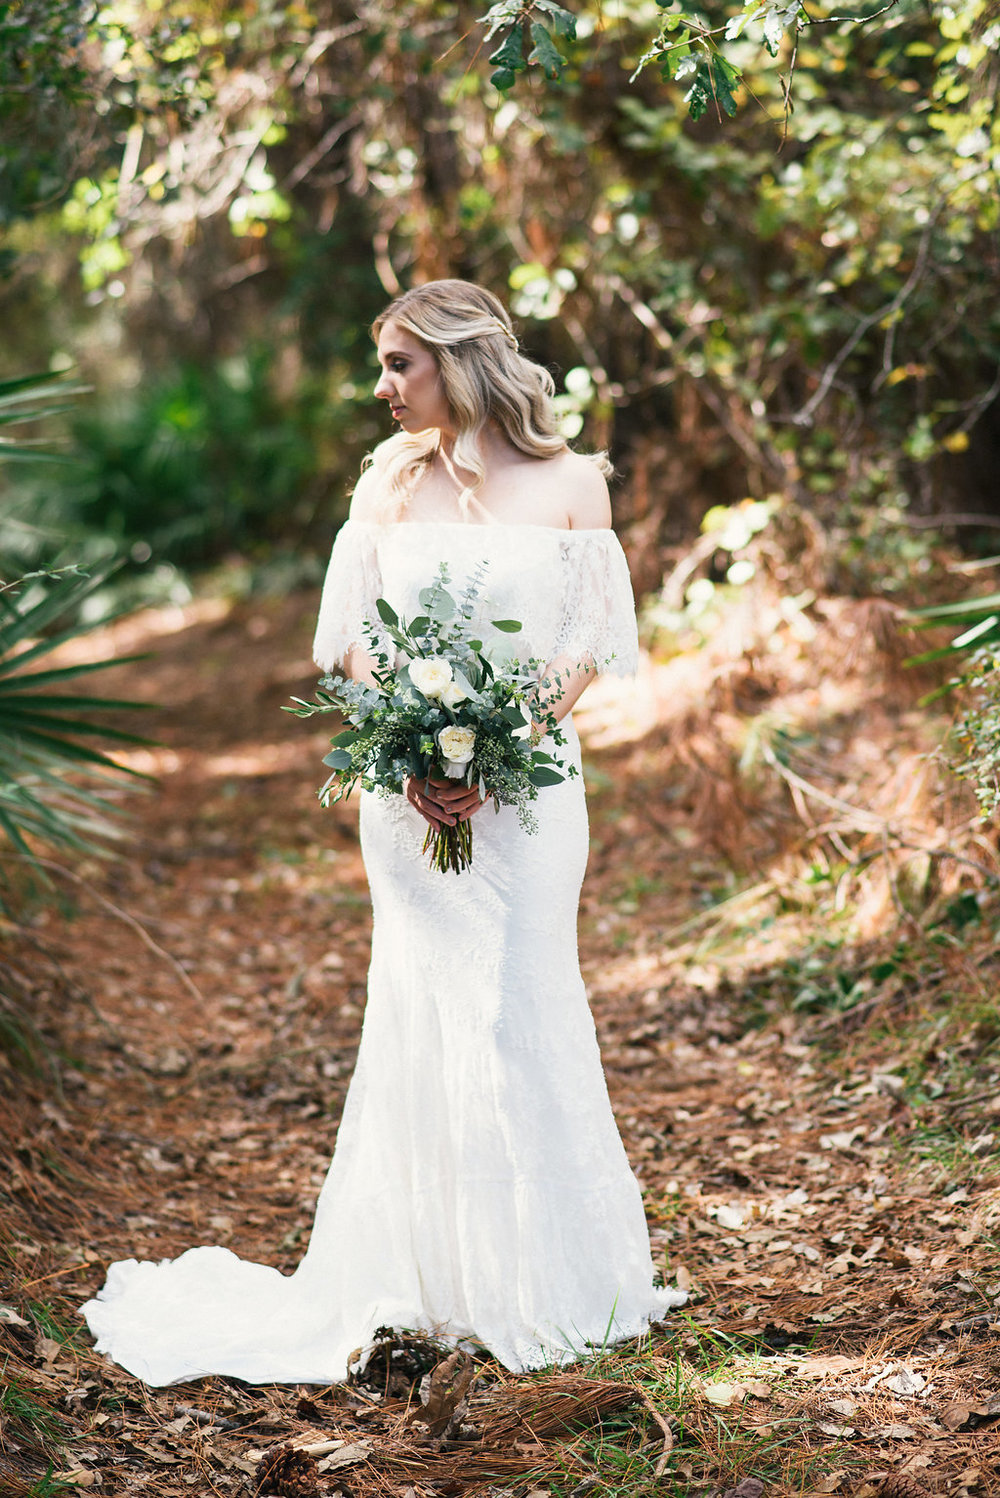 ivory-and-beau-bridal-boutique-meg-hill-photography-laurence-daughters-of-simone-boho-wedding-gown-douglas-ga-wedding-10.jpg